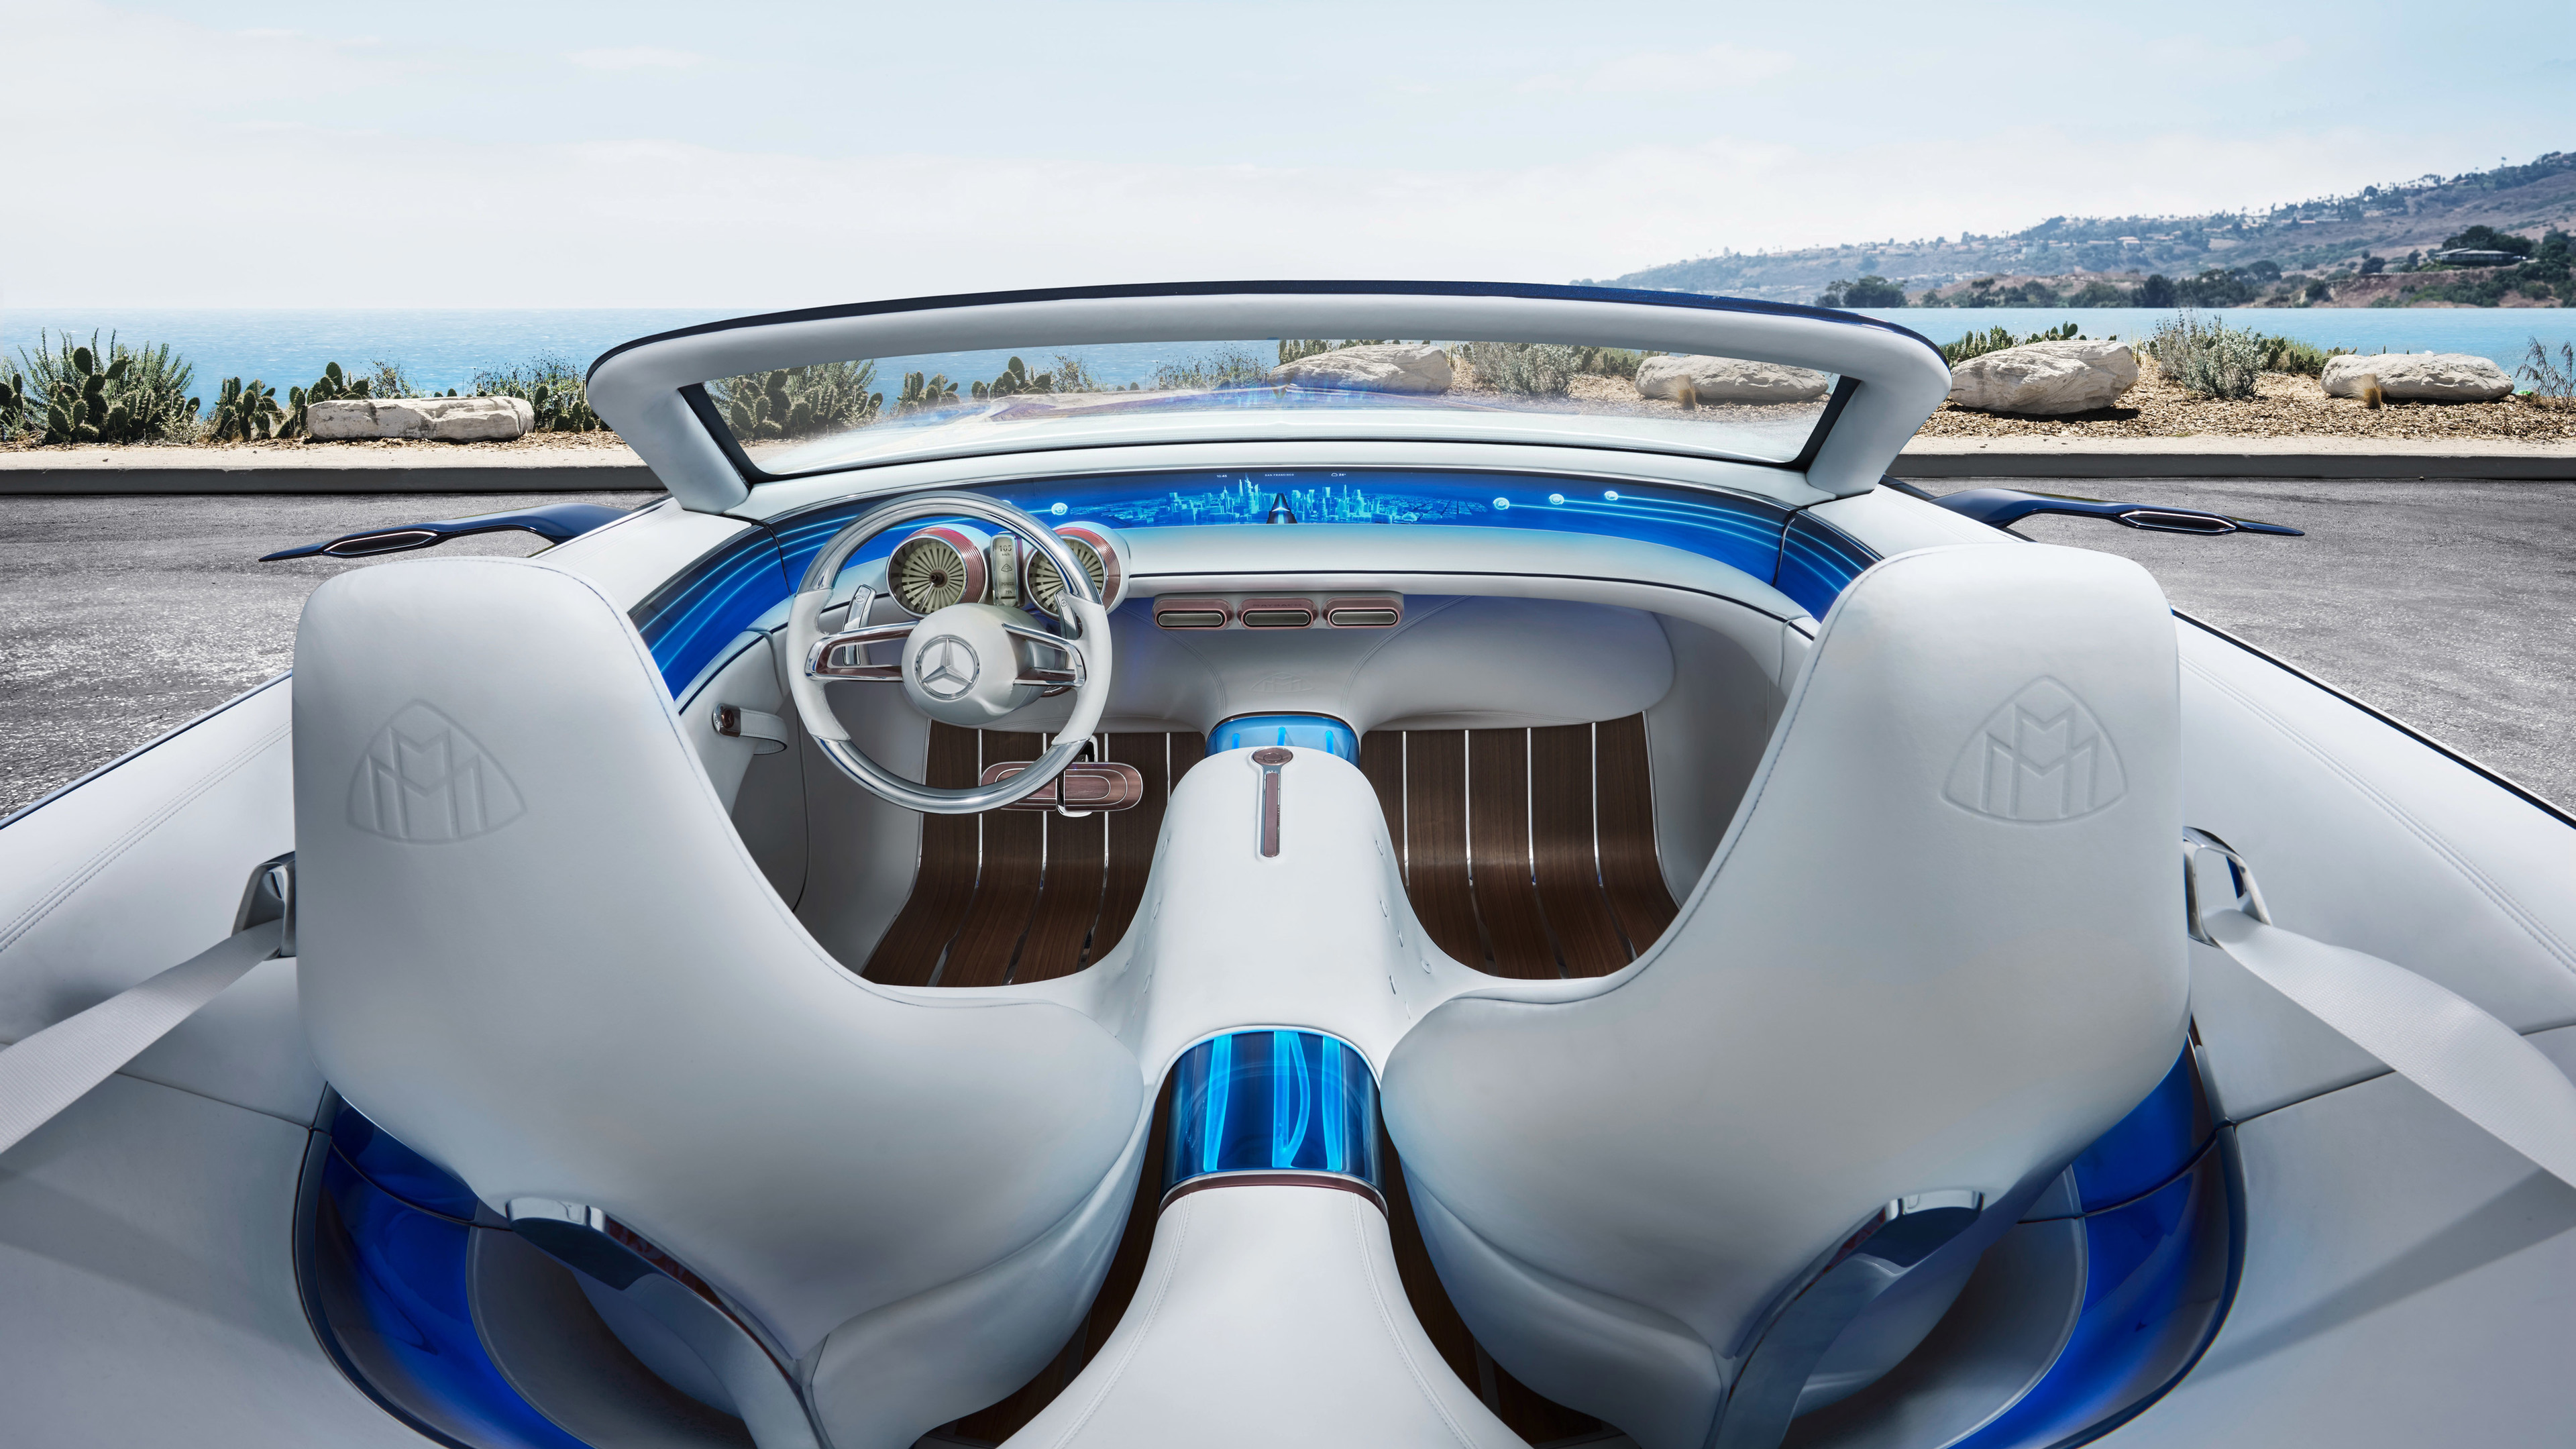 vision mercedes maybach 6 cabriolet interior 1539106973 - Vision Mercedes Maybach 6 Cabriolet Interior - mercedes wallpapers, mercedes maybach wallpapers, hd-wallpapers, electric cars wallpapers, concept cars wallpapers, cars wallpapers, 4k-wallpapers, 2017 cars wallpapers